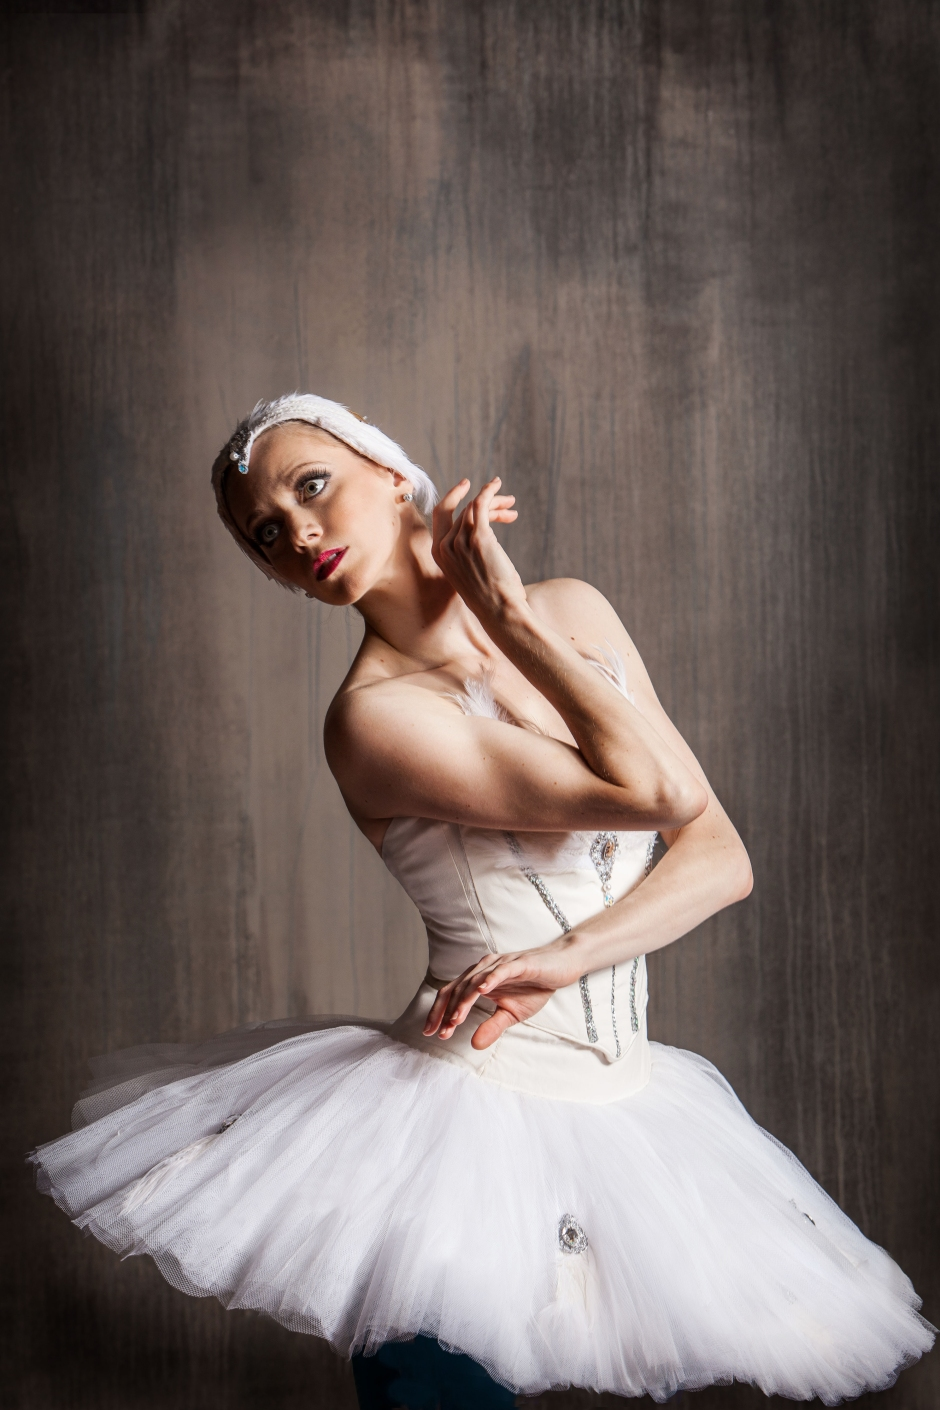 """Pittsburgh Ballet Theatre's Julia Erickson as the White Swan in """"Swan Lake"""". Photo by Duane Rieder."""